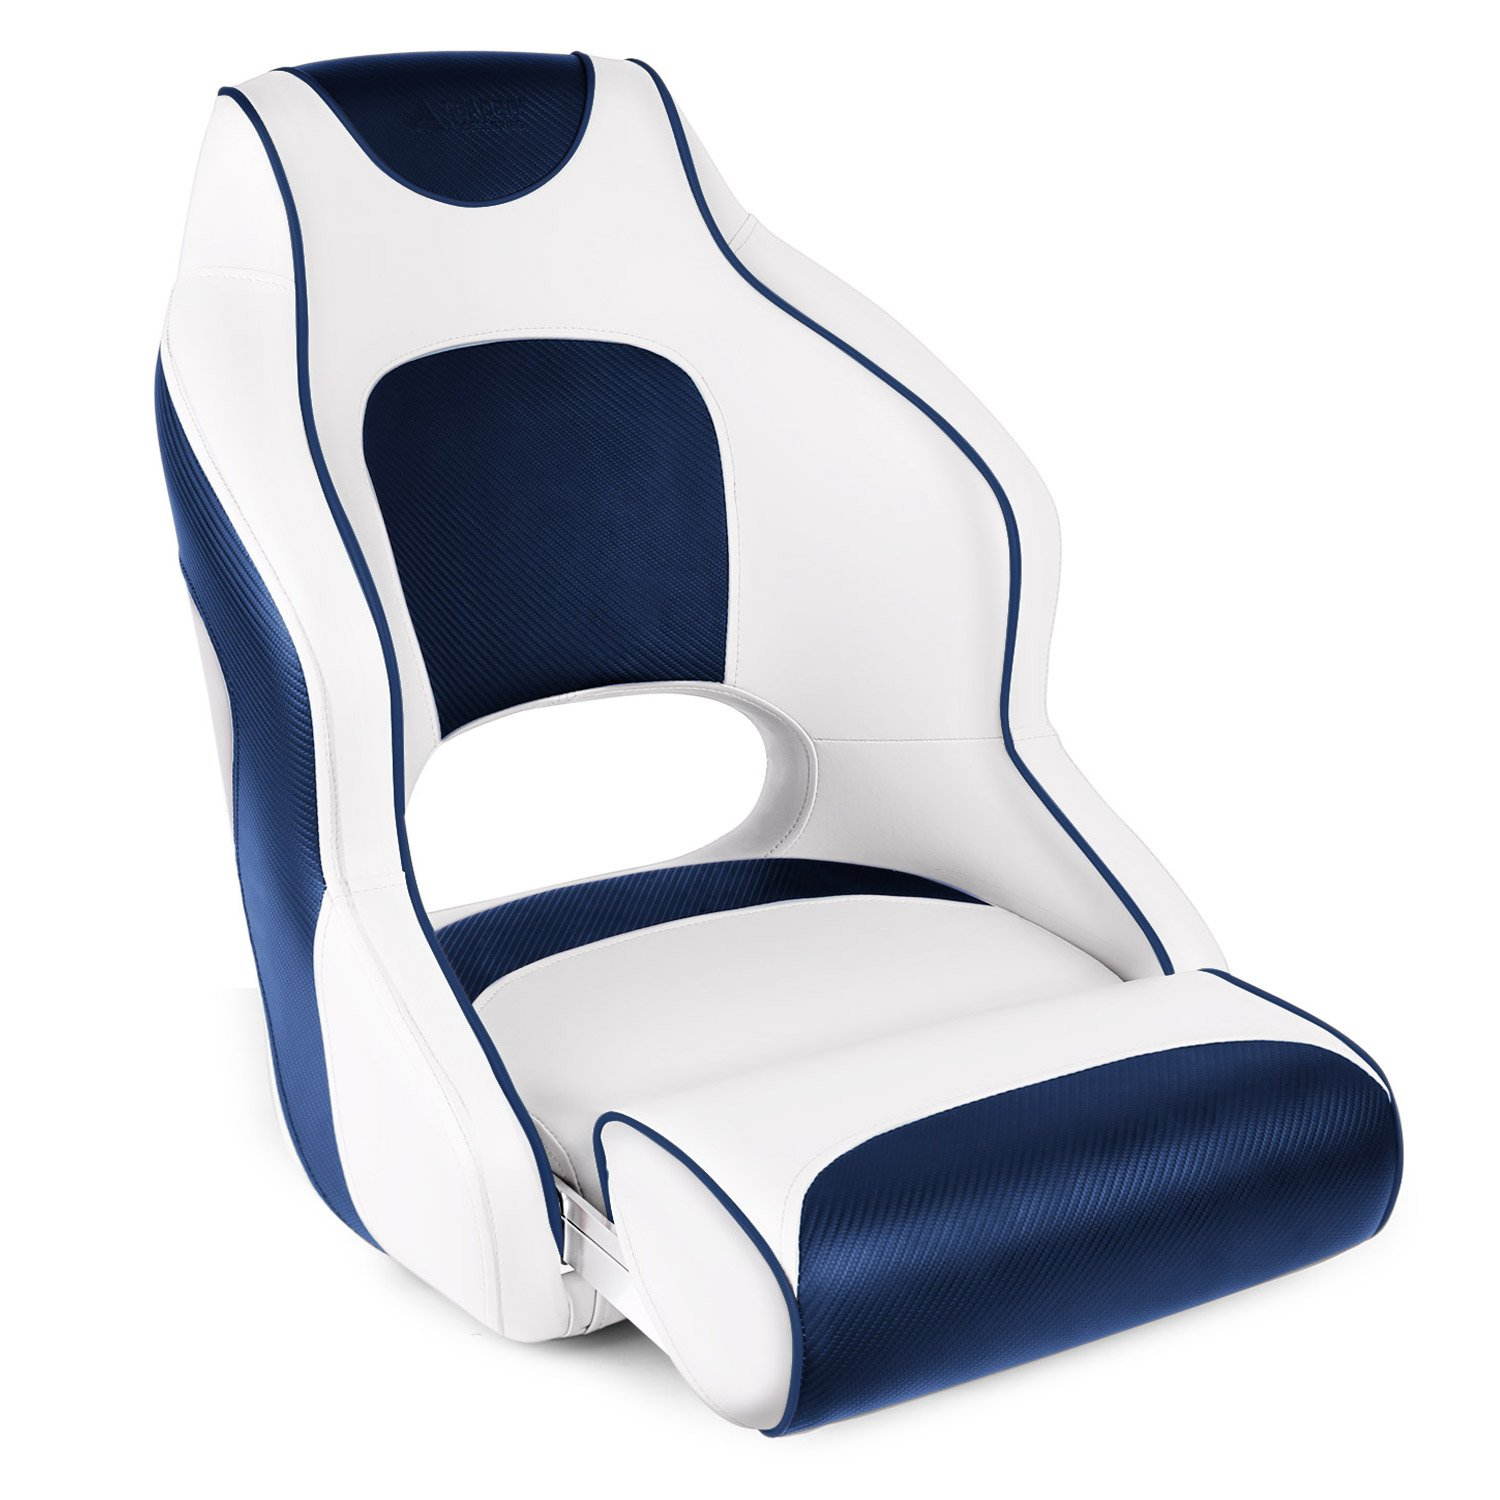 Leader Accessories Two Tone Captain's Bucket Seat Boat Seat Premium Sports Flip Up Boat Seat(White/Blue,Blue Piping)